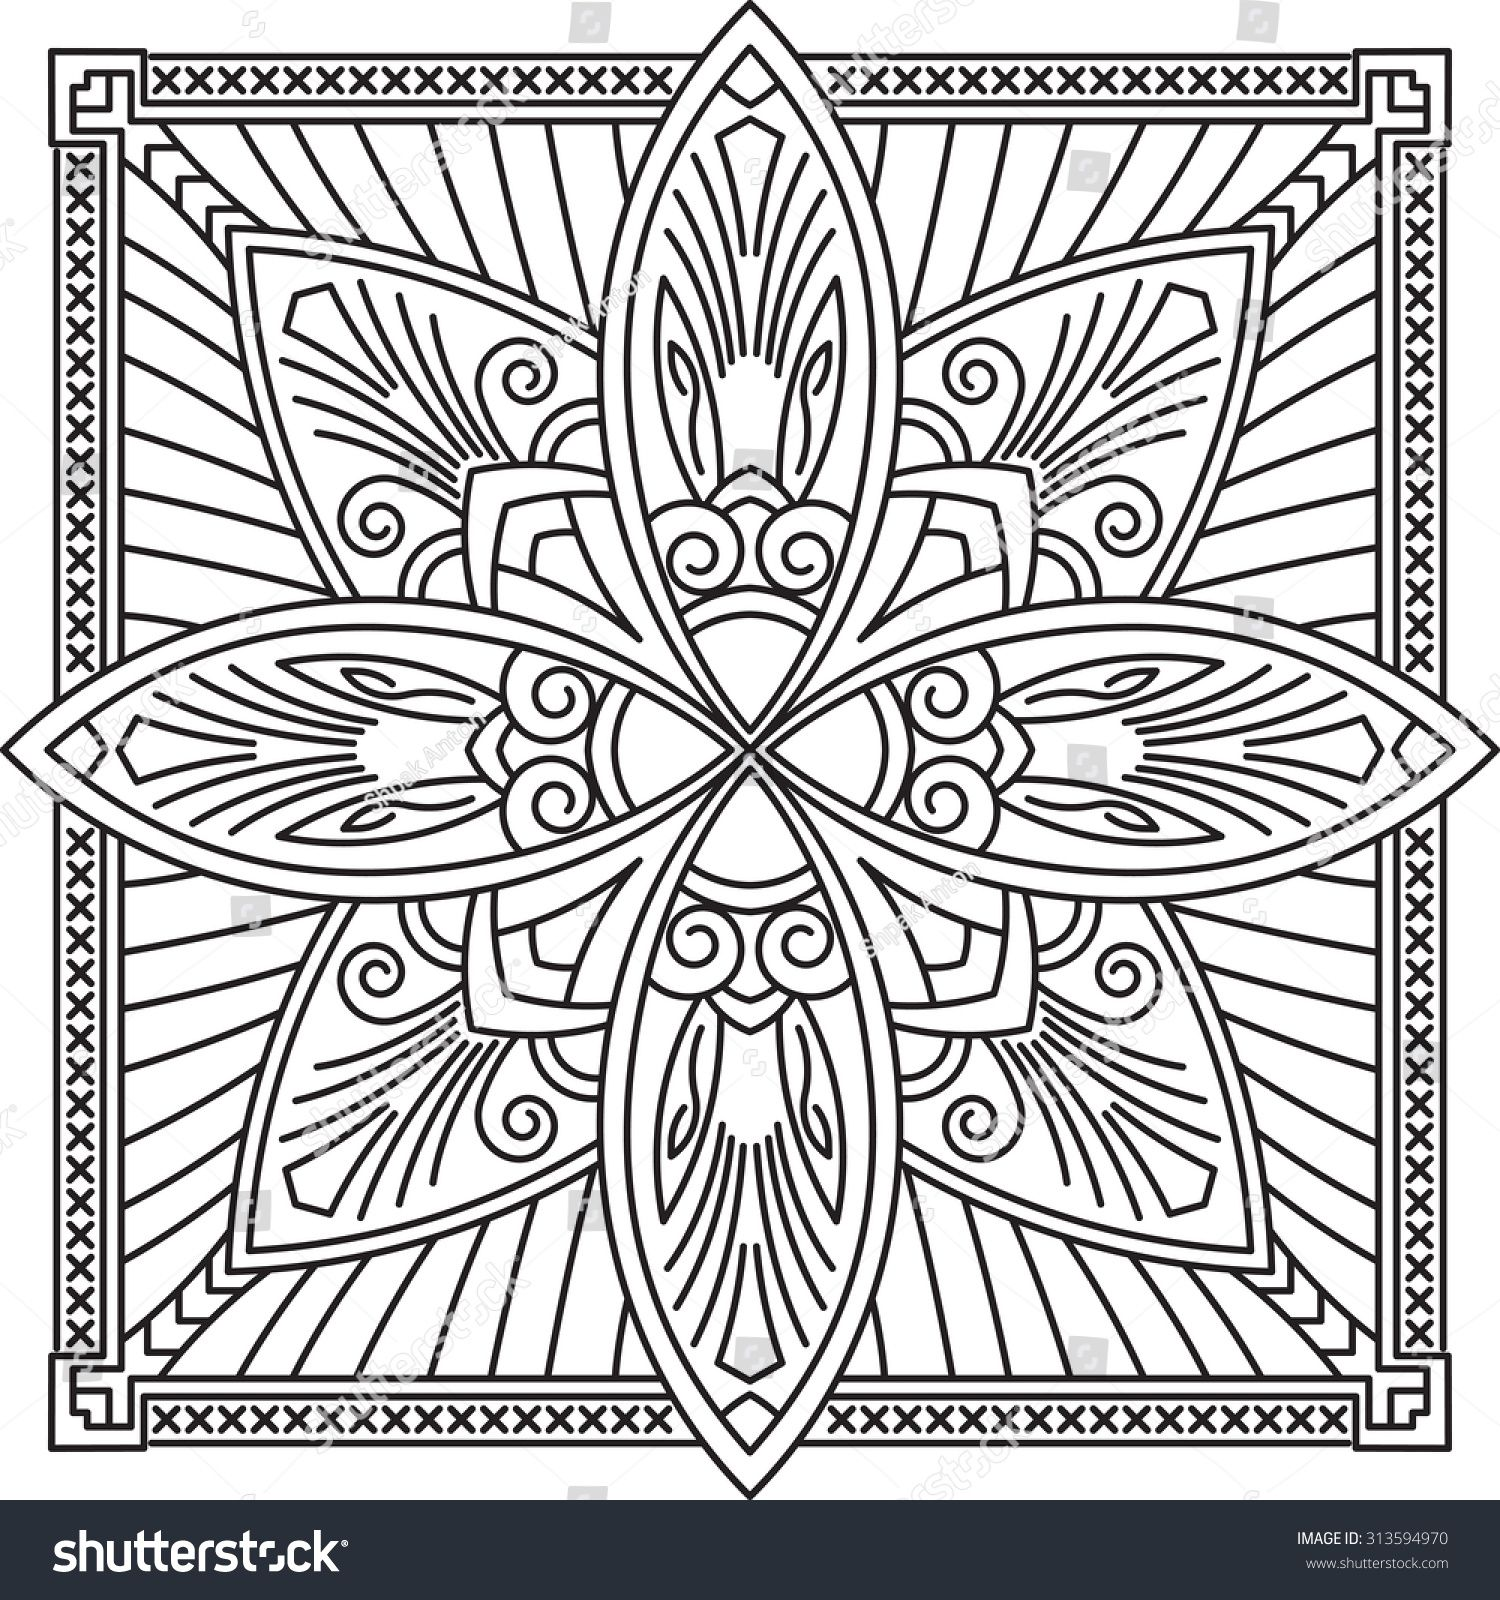 found on google from mandaly mandala coloring pages mandala. Black Bedroom Furniture Sets. Home Design Ideas